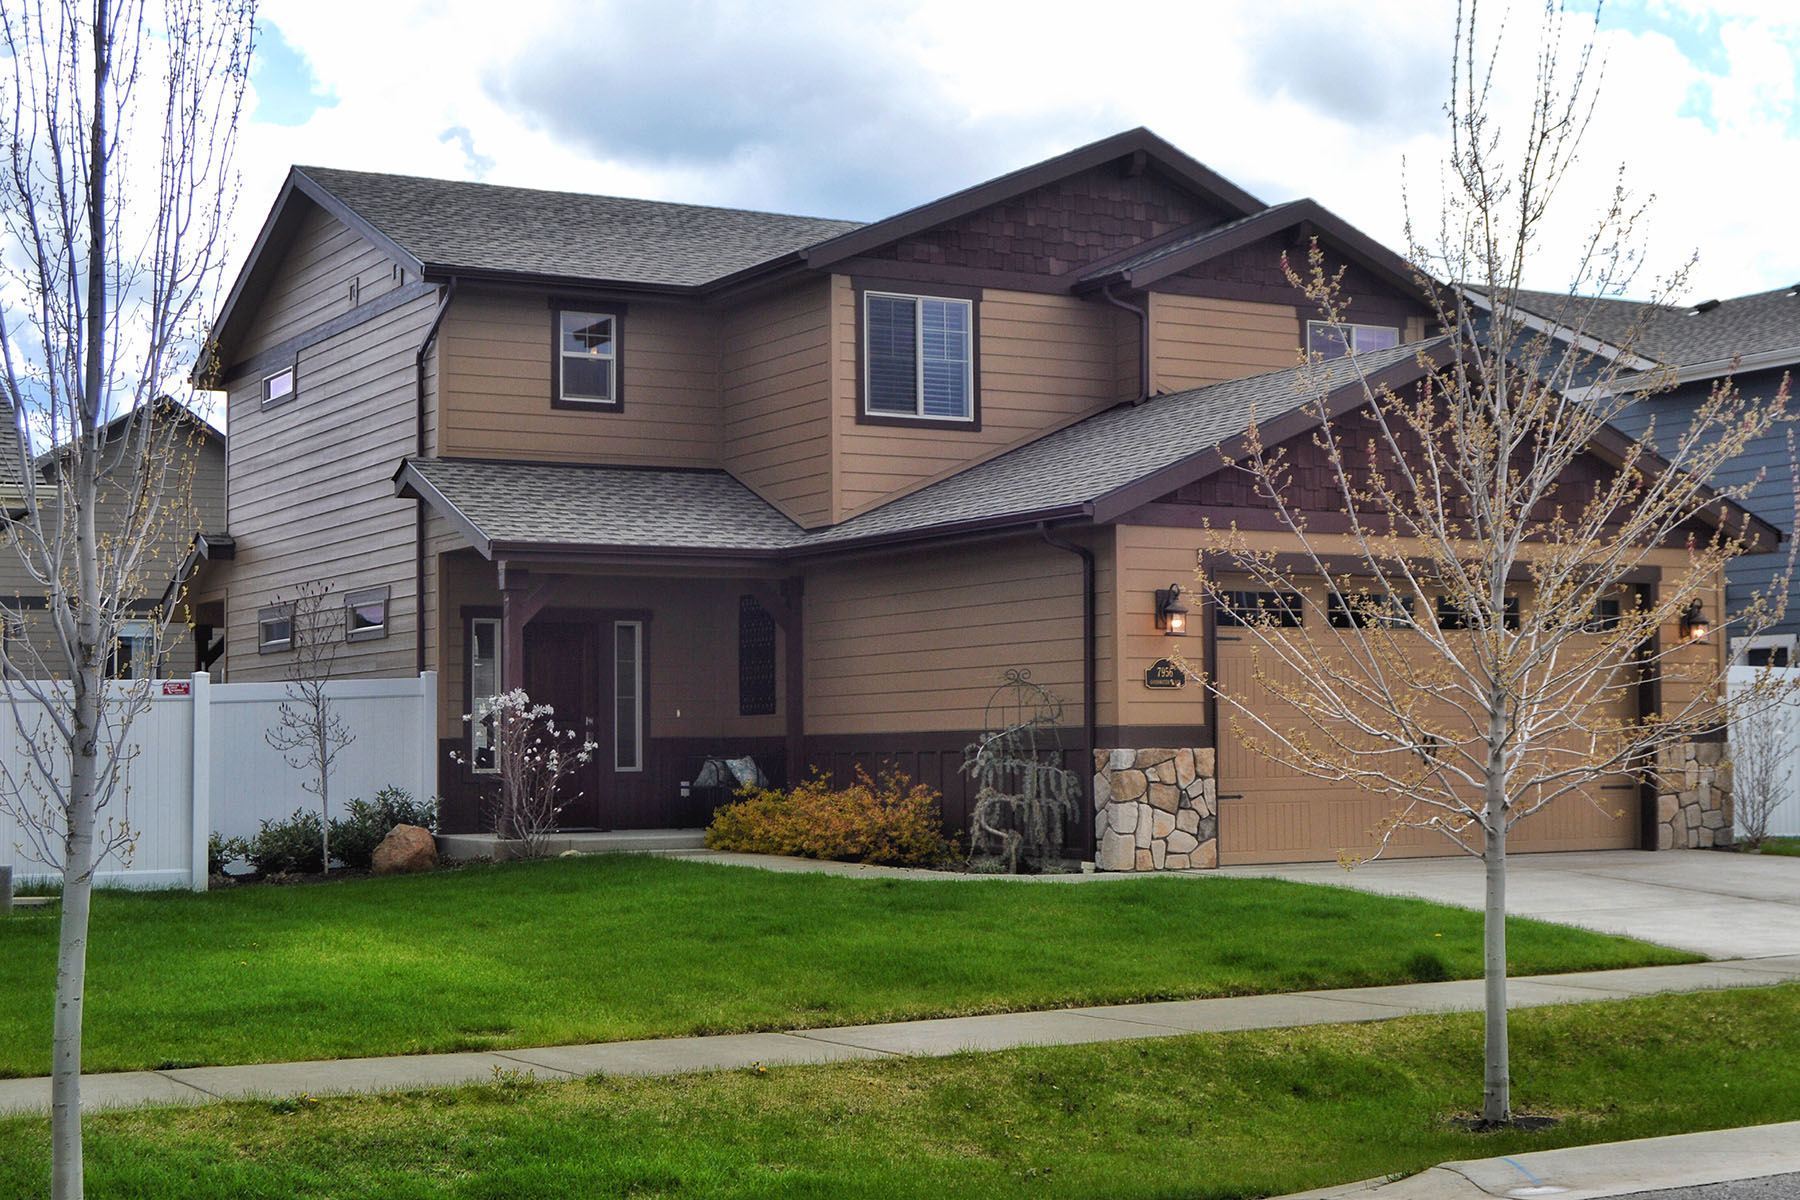 Single Family Home for Sale at 7956 N. Goodwater Loop 7956 N Goodwater Loop Coeur D Alene, Idaho, 83815 United States